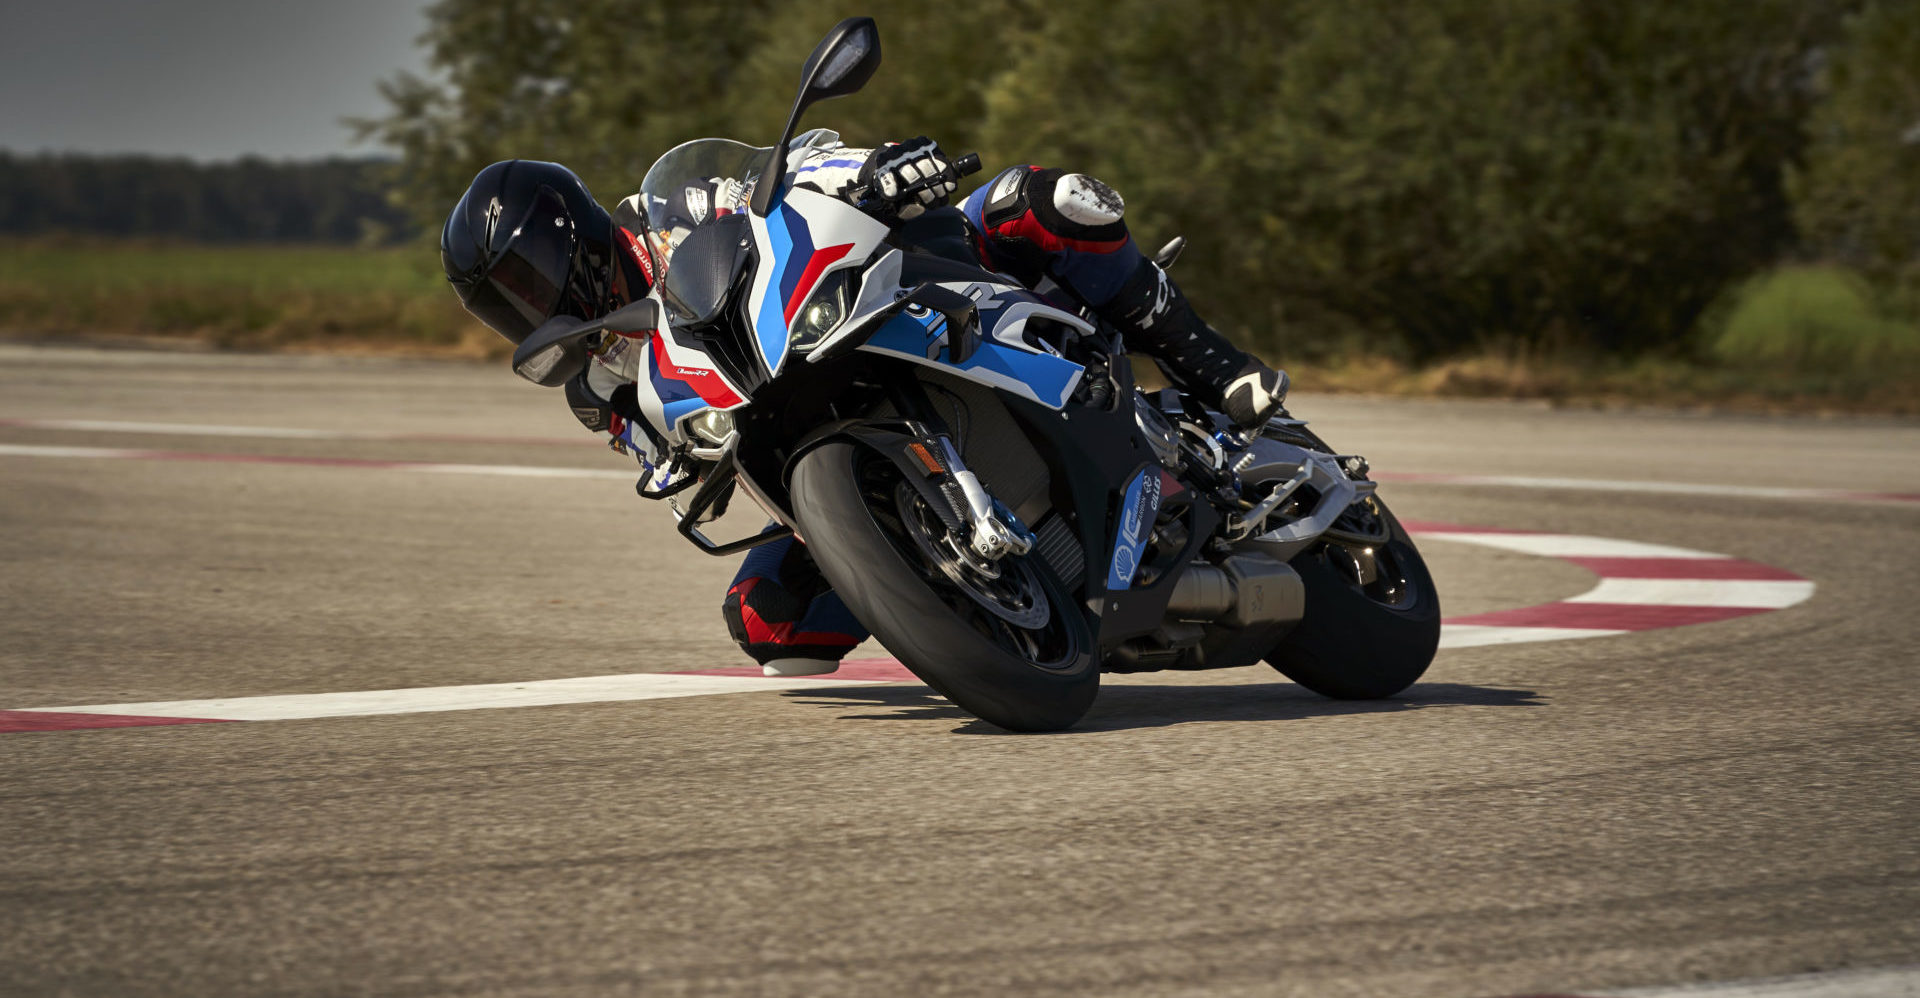 BMW's new M 1000 RR in action. Photo courtesy BMW Motorrad.